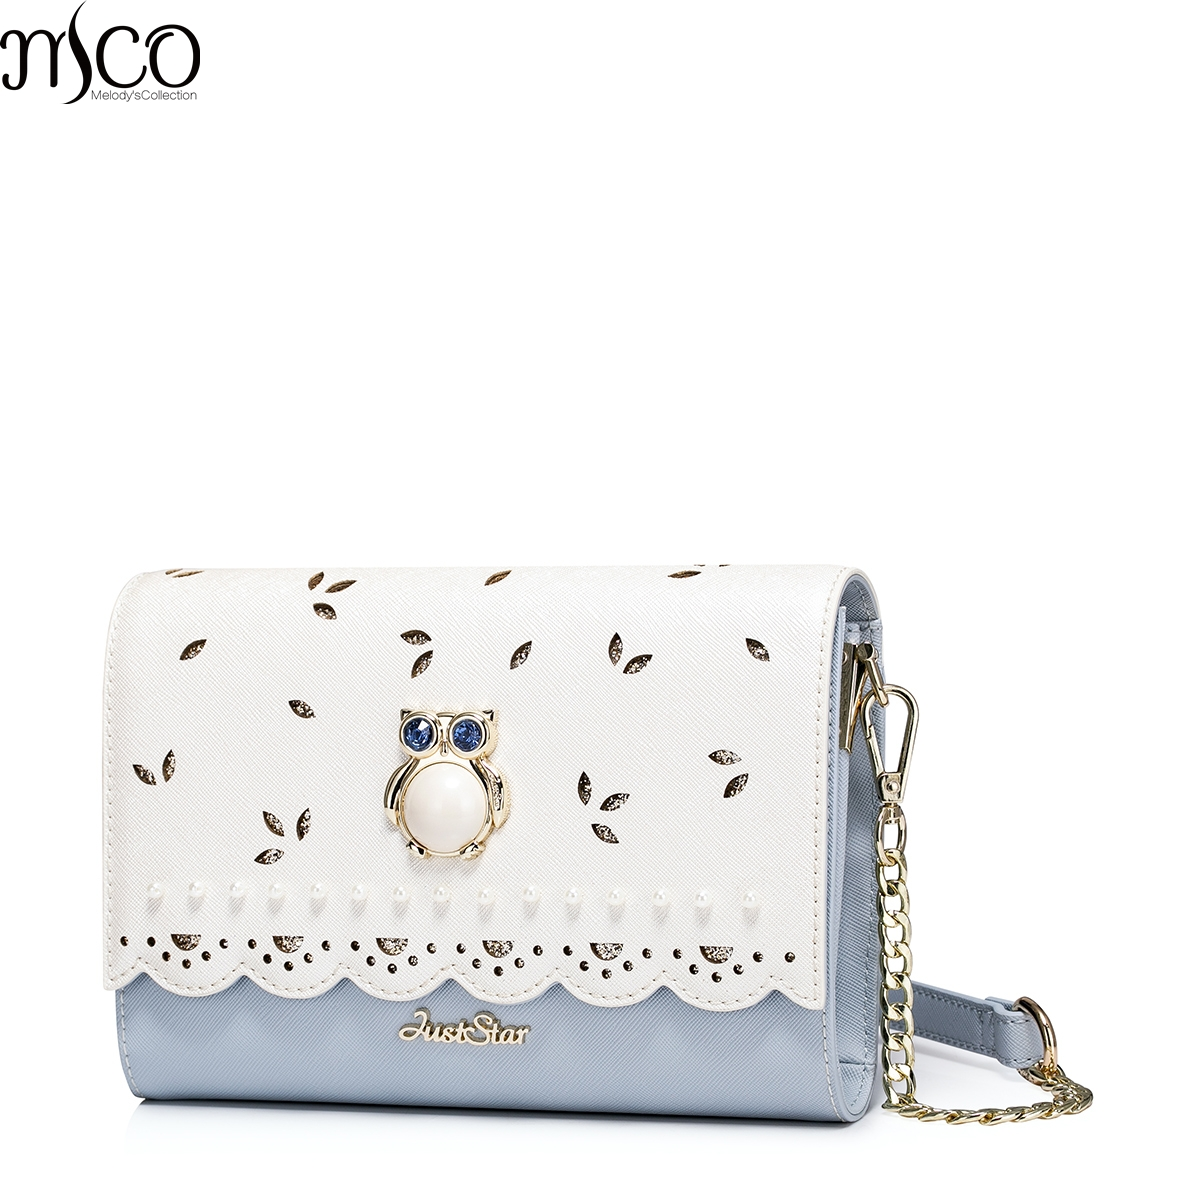 2017 Summer Luxury Diamonds Owl Small Clutch Bags For Women Elegant Hollow Out OL Messenger Shoulder Bags Flap Envolope HandBag